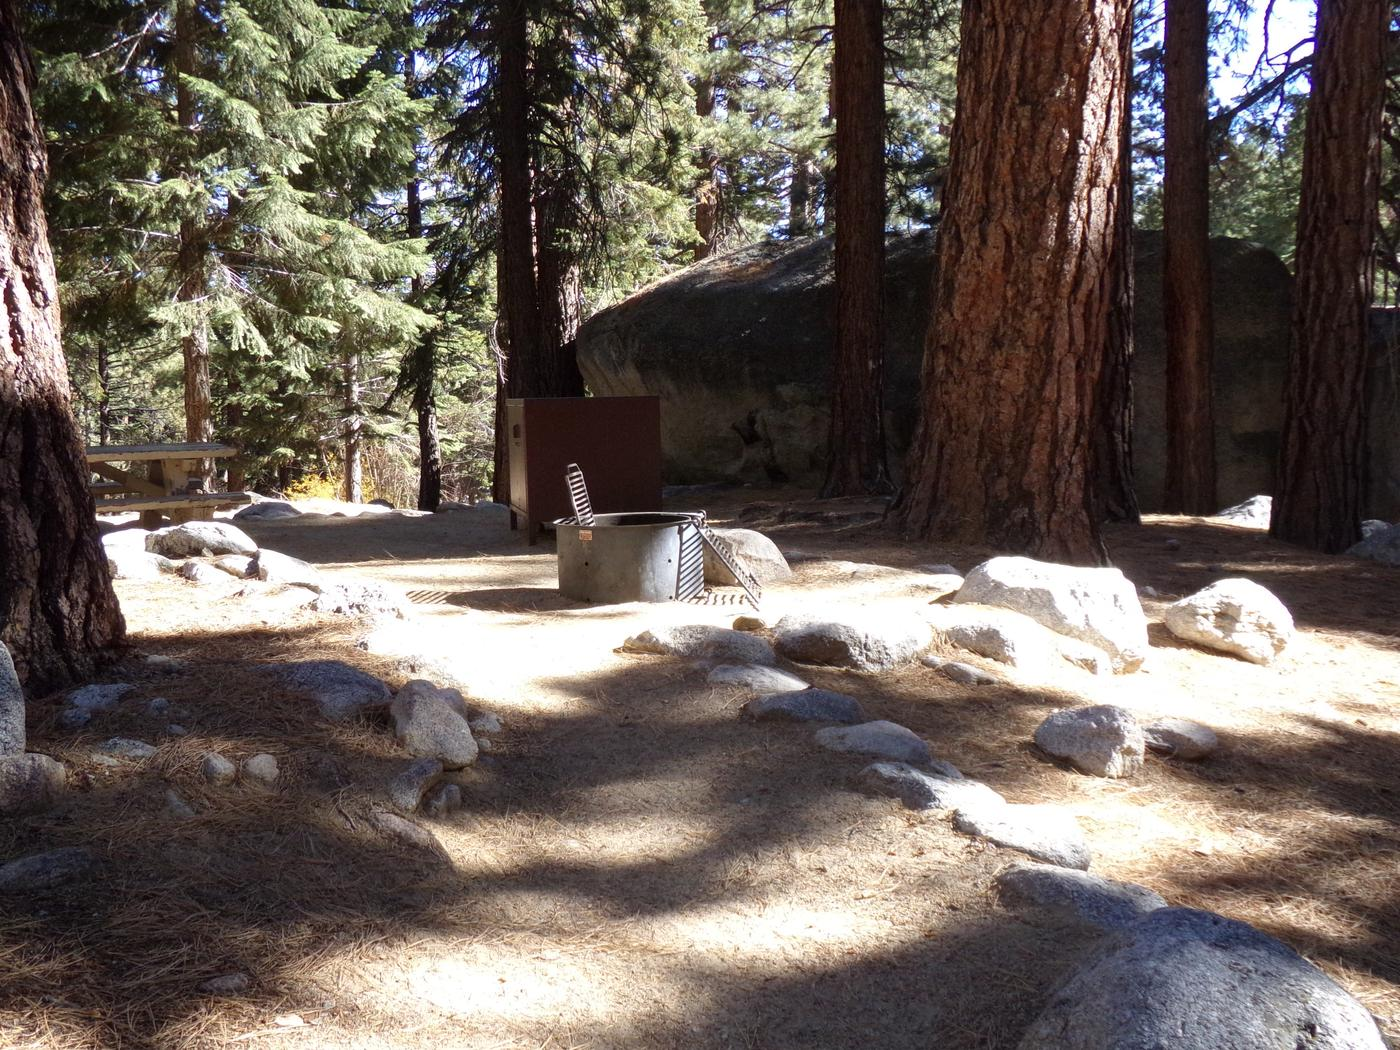 Mt. Whitney Portal Campground site #13 featuring mountain top setting with picnic area and camping space.